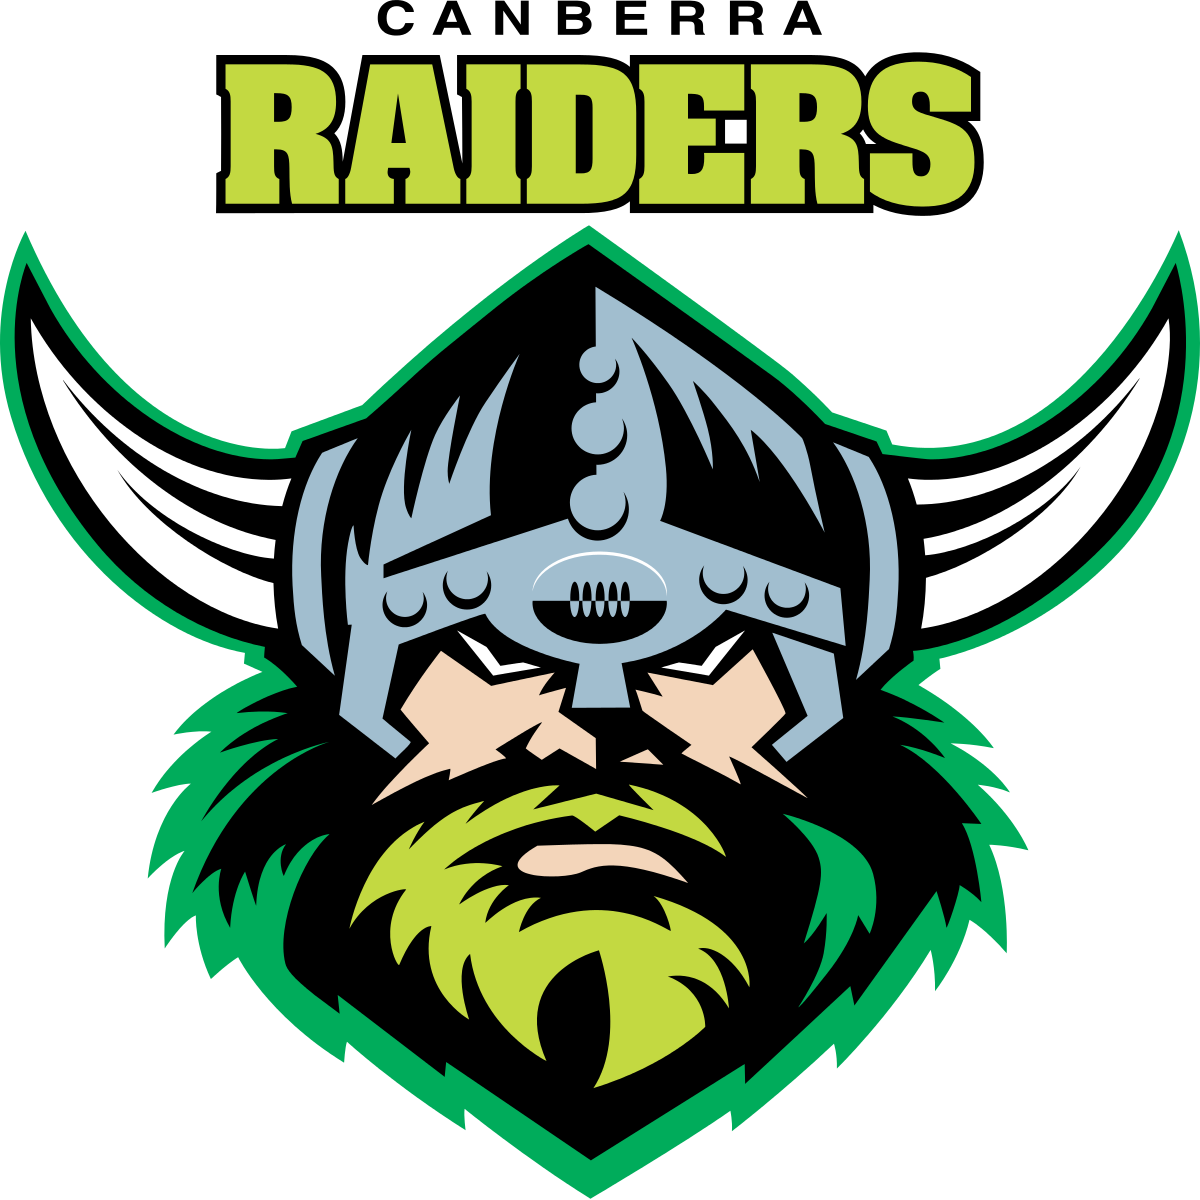 Canberra raiders wikipedia . Warrior clipart viking iceland